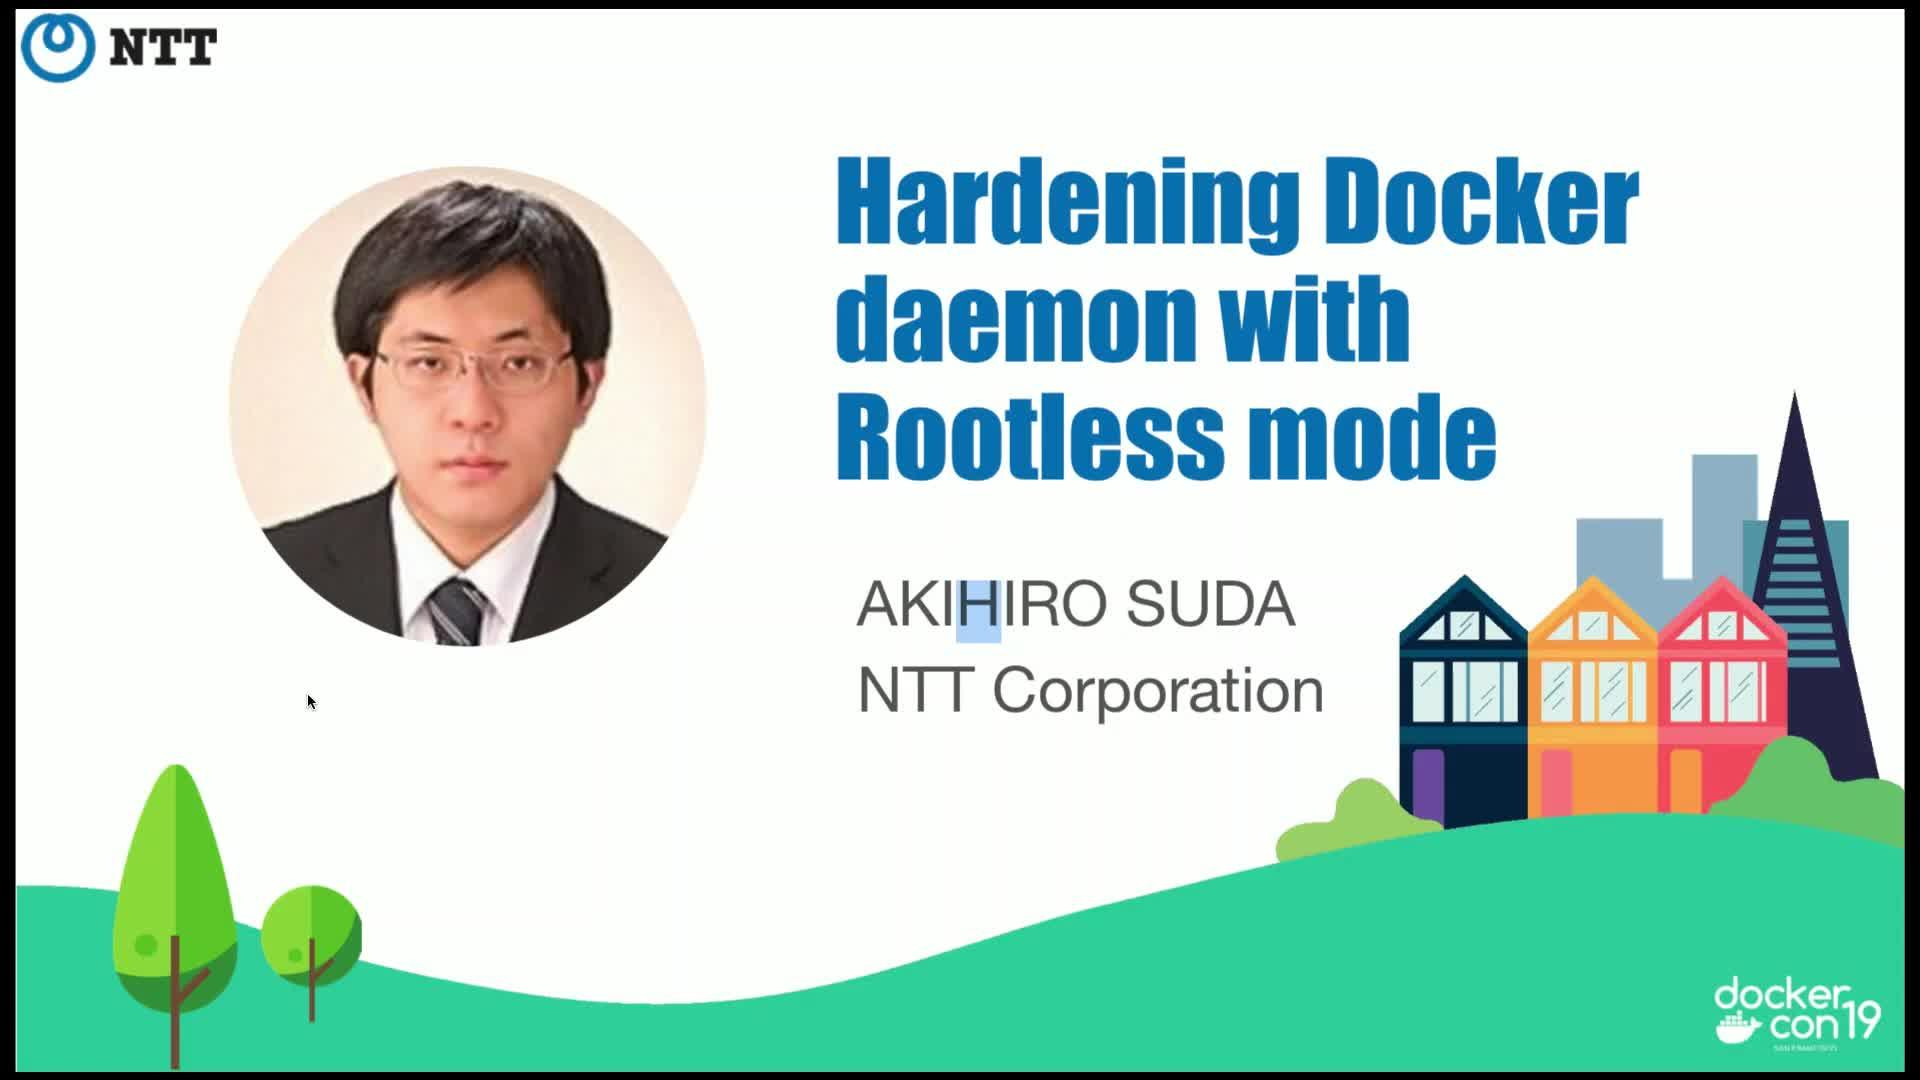 Hardening Docker daemon with Rootless mode